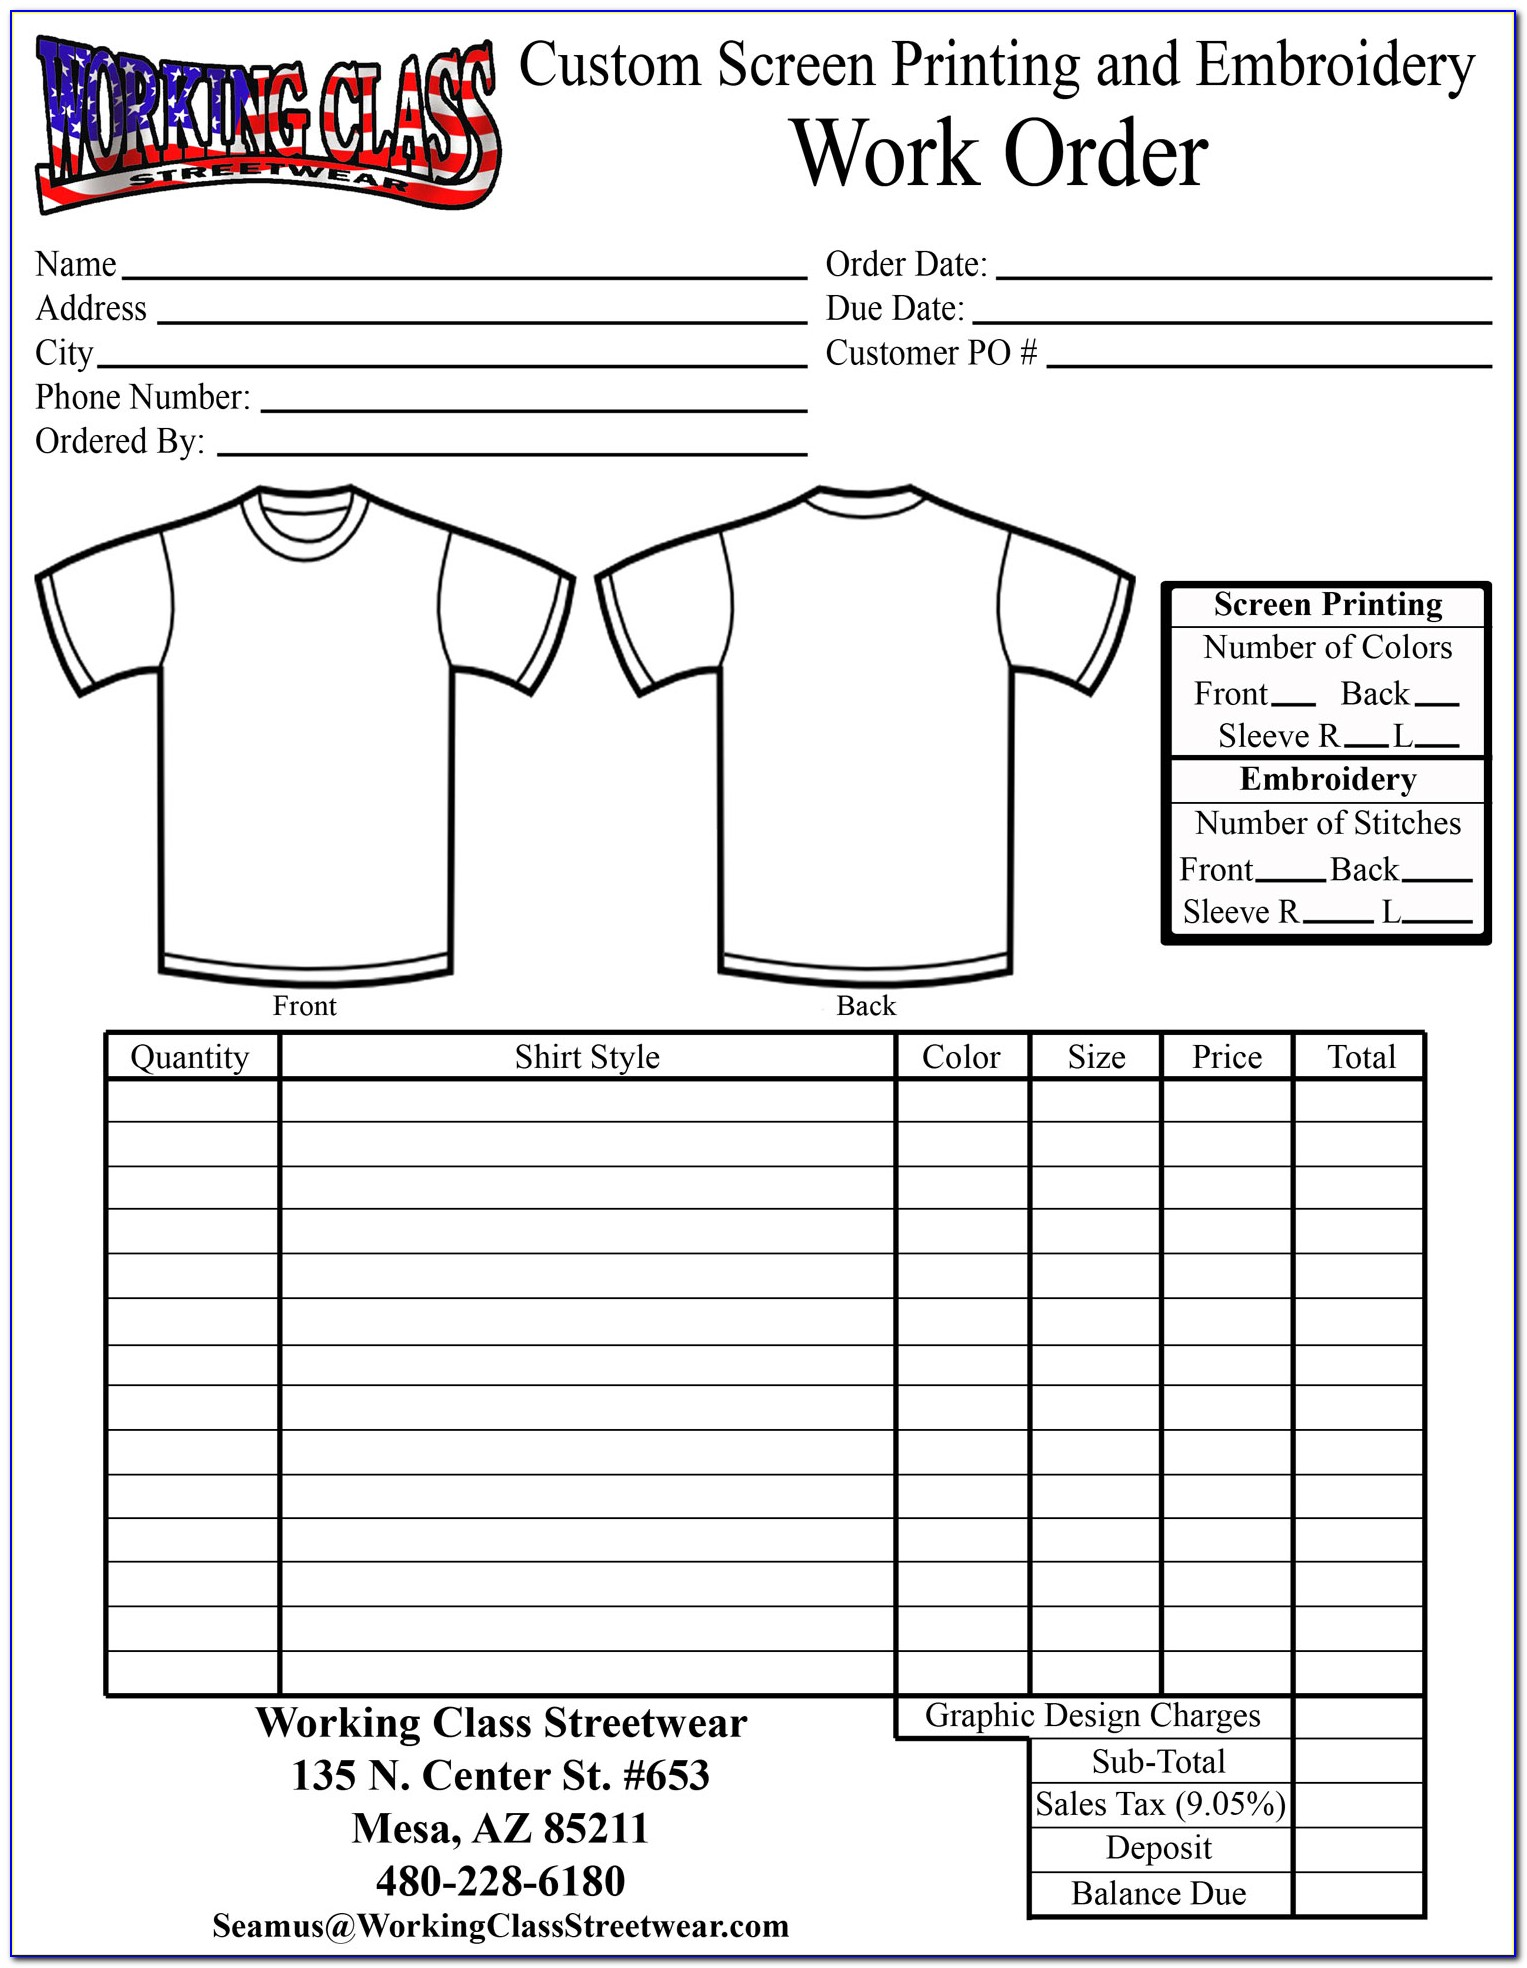 Custom Shirt Order Form Template Vincegray2014